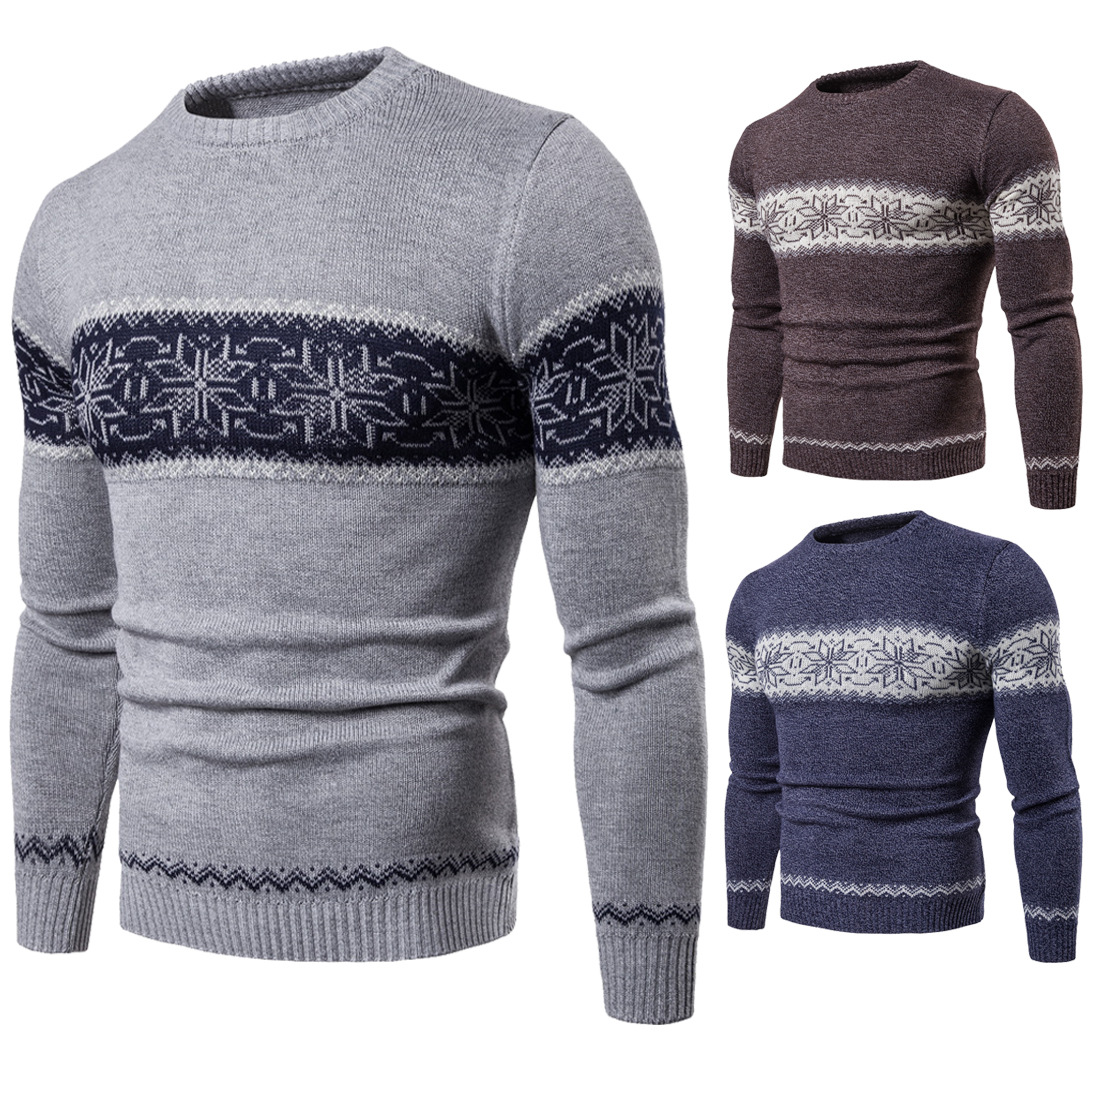 YM006 New Men's Clothing Round Collar Turtleneck Slimming Sweaters Pullovers Spot Knitted Sweaters